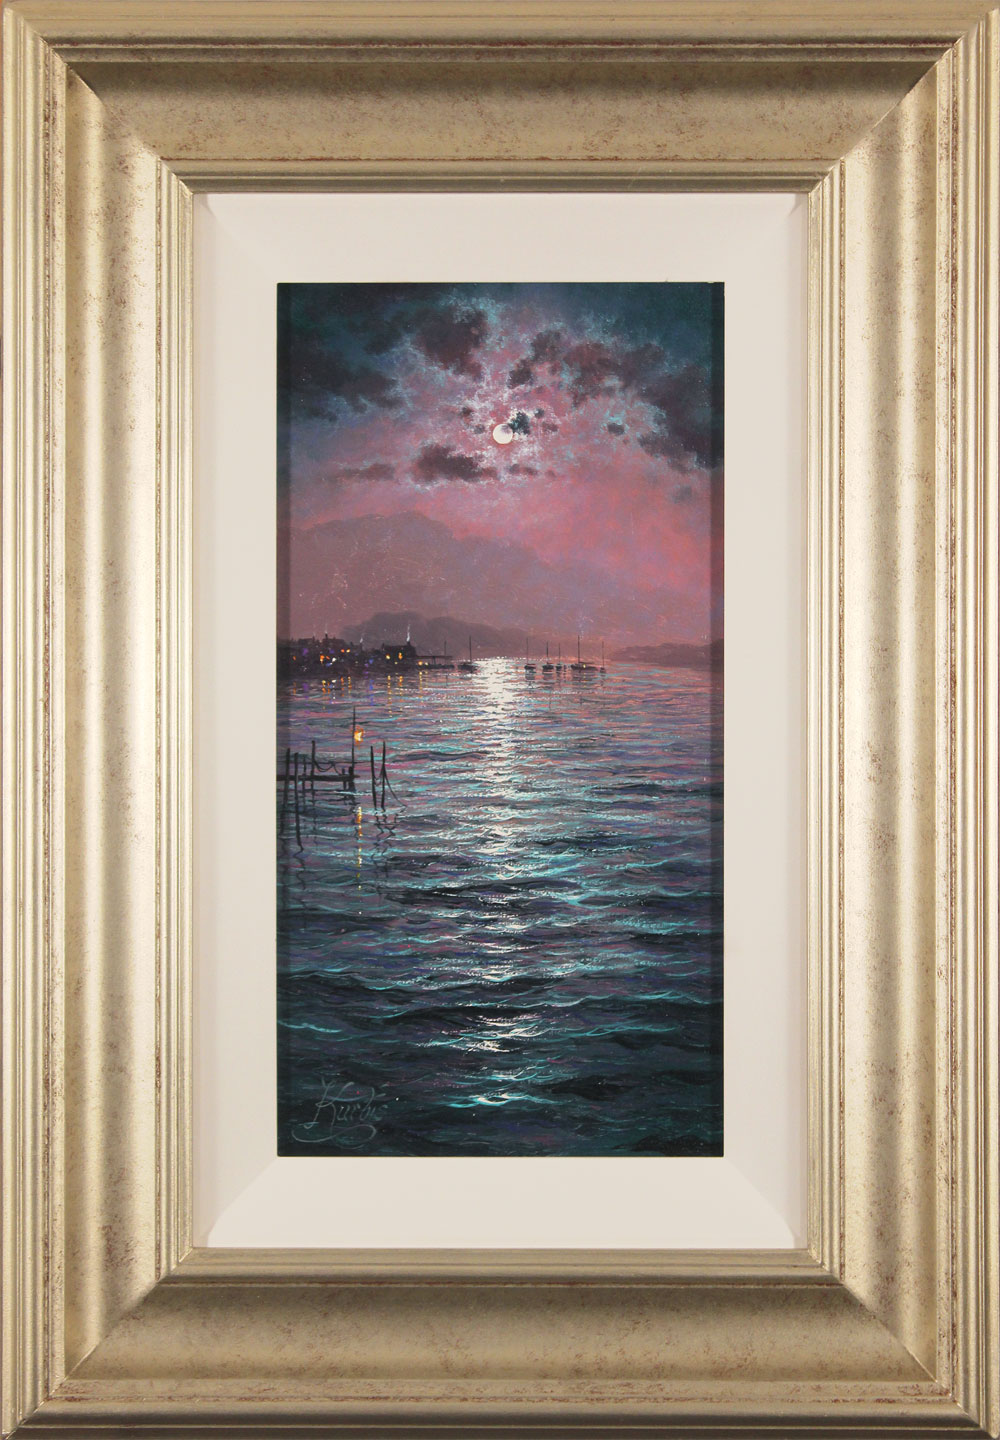 Andrew Grant Kurtis, Original oil painting on canvas, Moonlight Sparkle. Click to enlarge